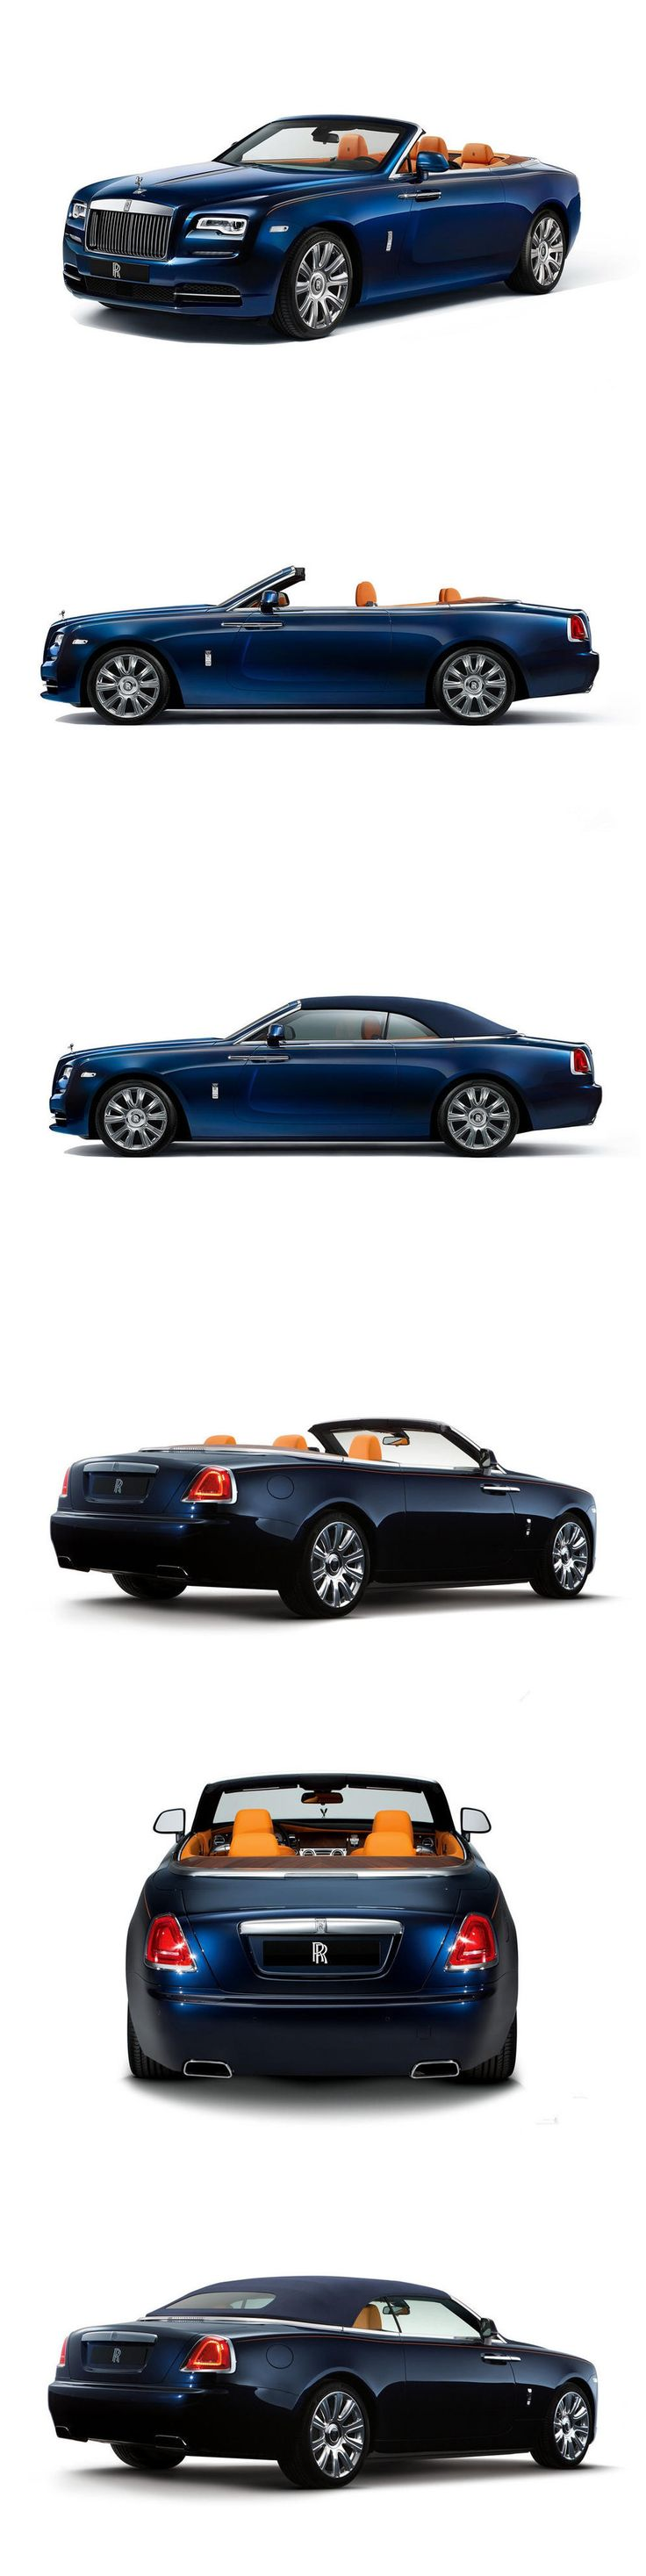 147 best Rolls & Royce images on Pinterest